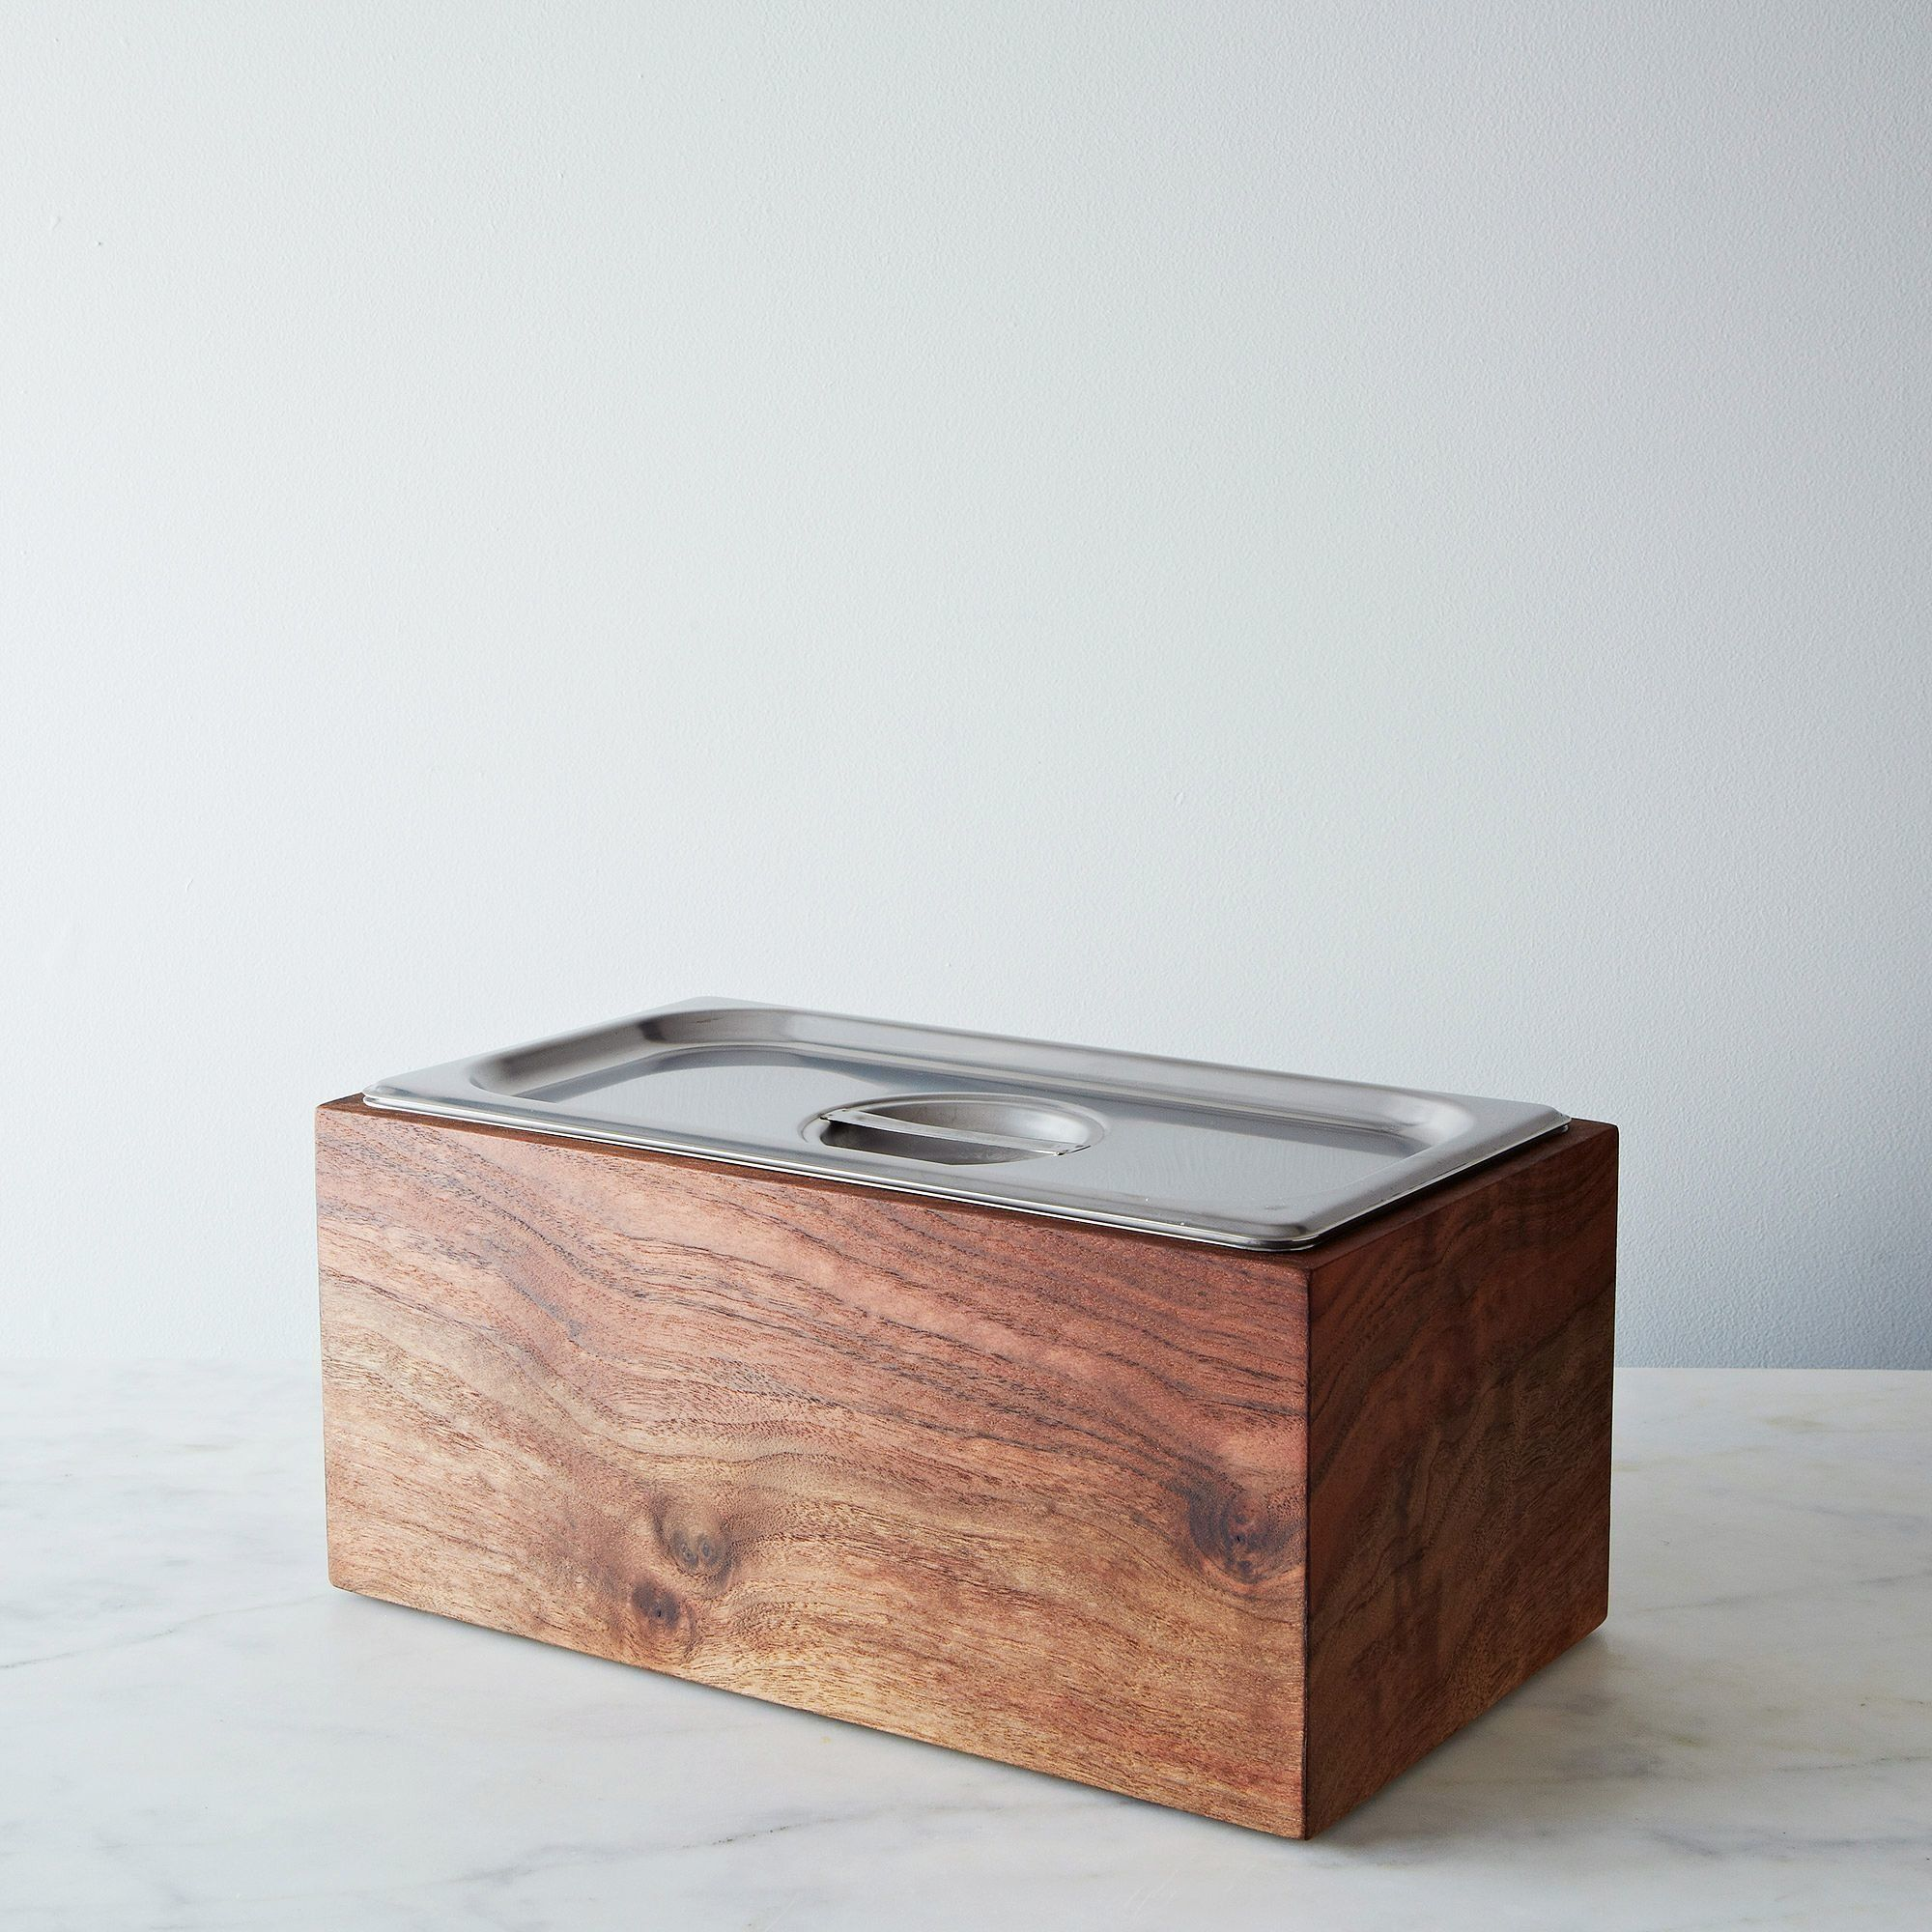 kitchen compost container order cabinets online 14 stylish bins that ll look right at home in your noaway countertop walnut bin